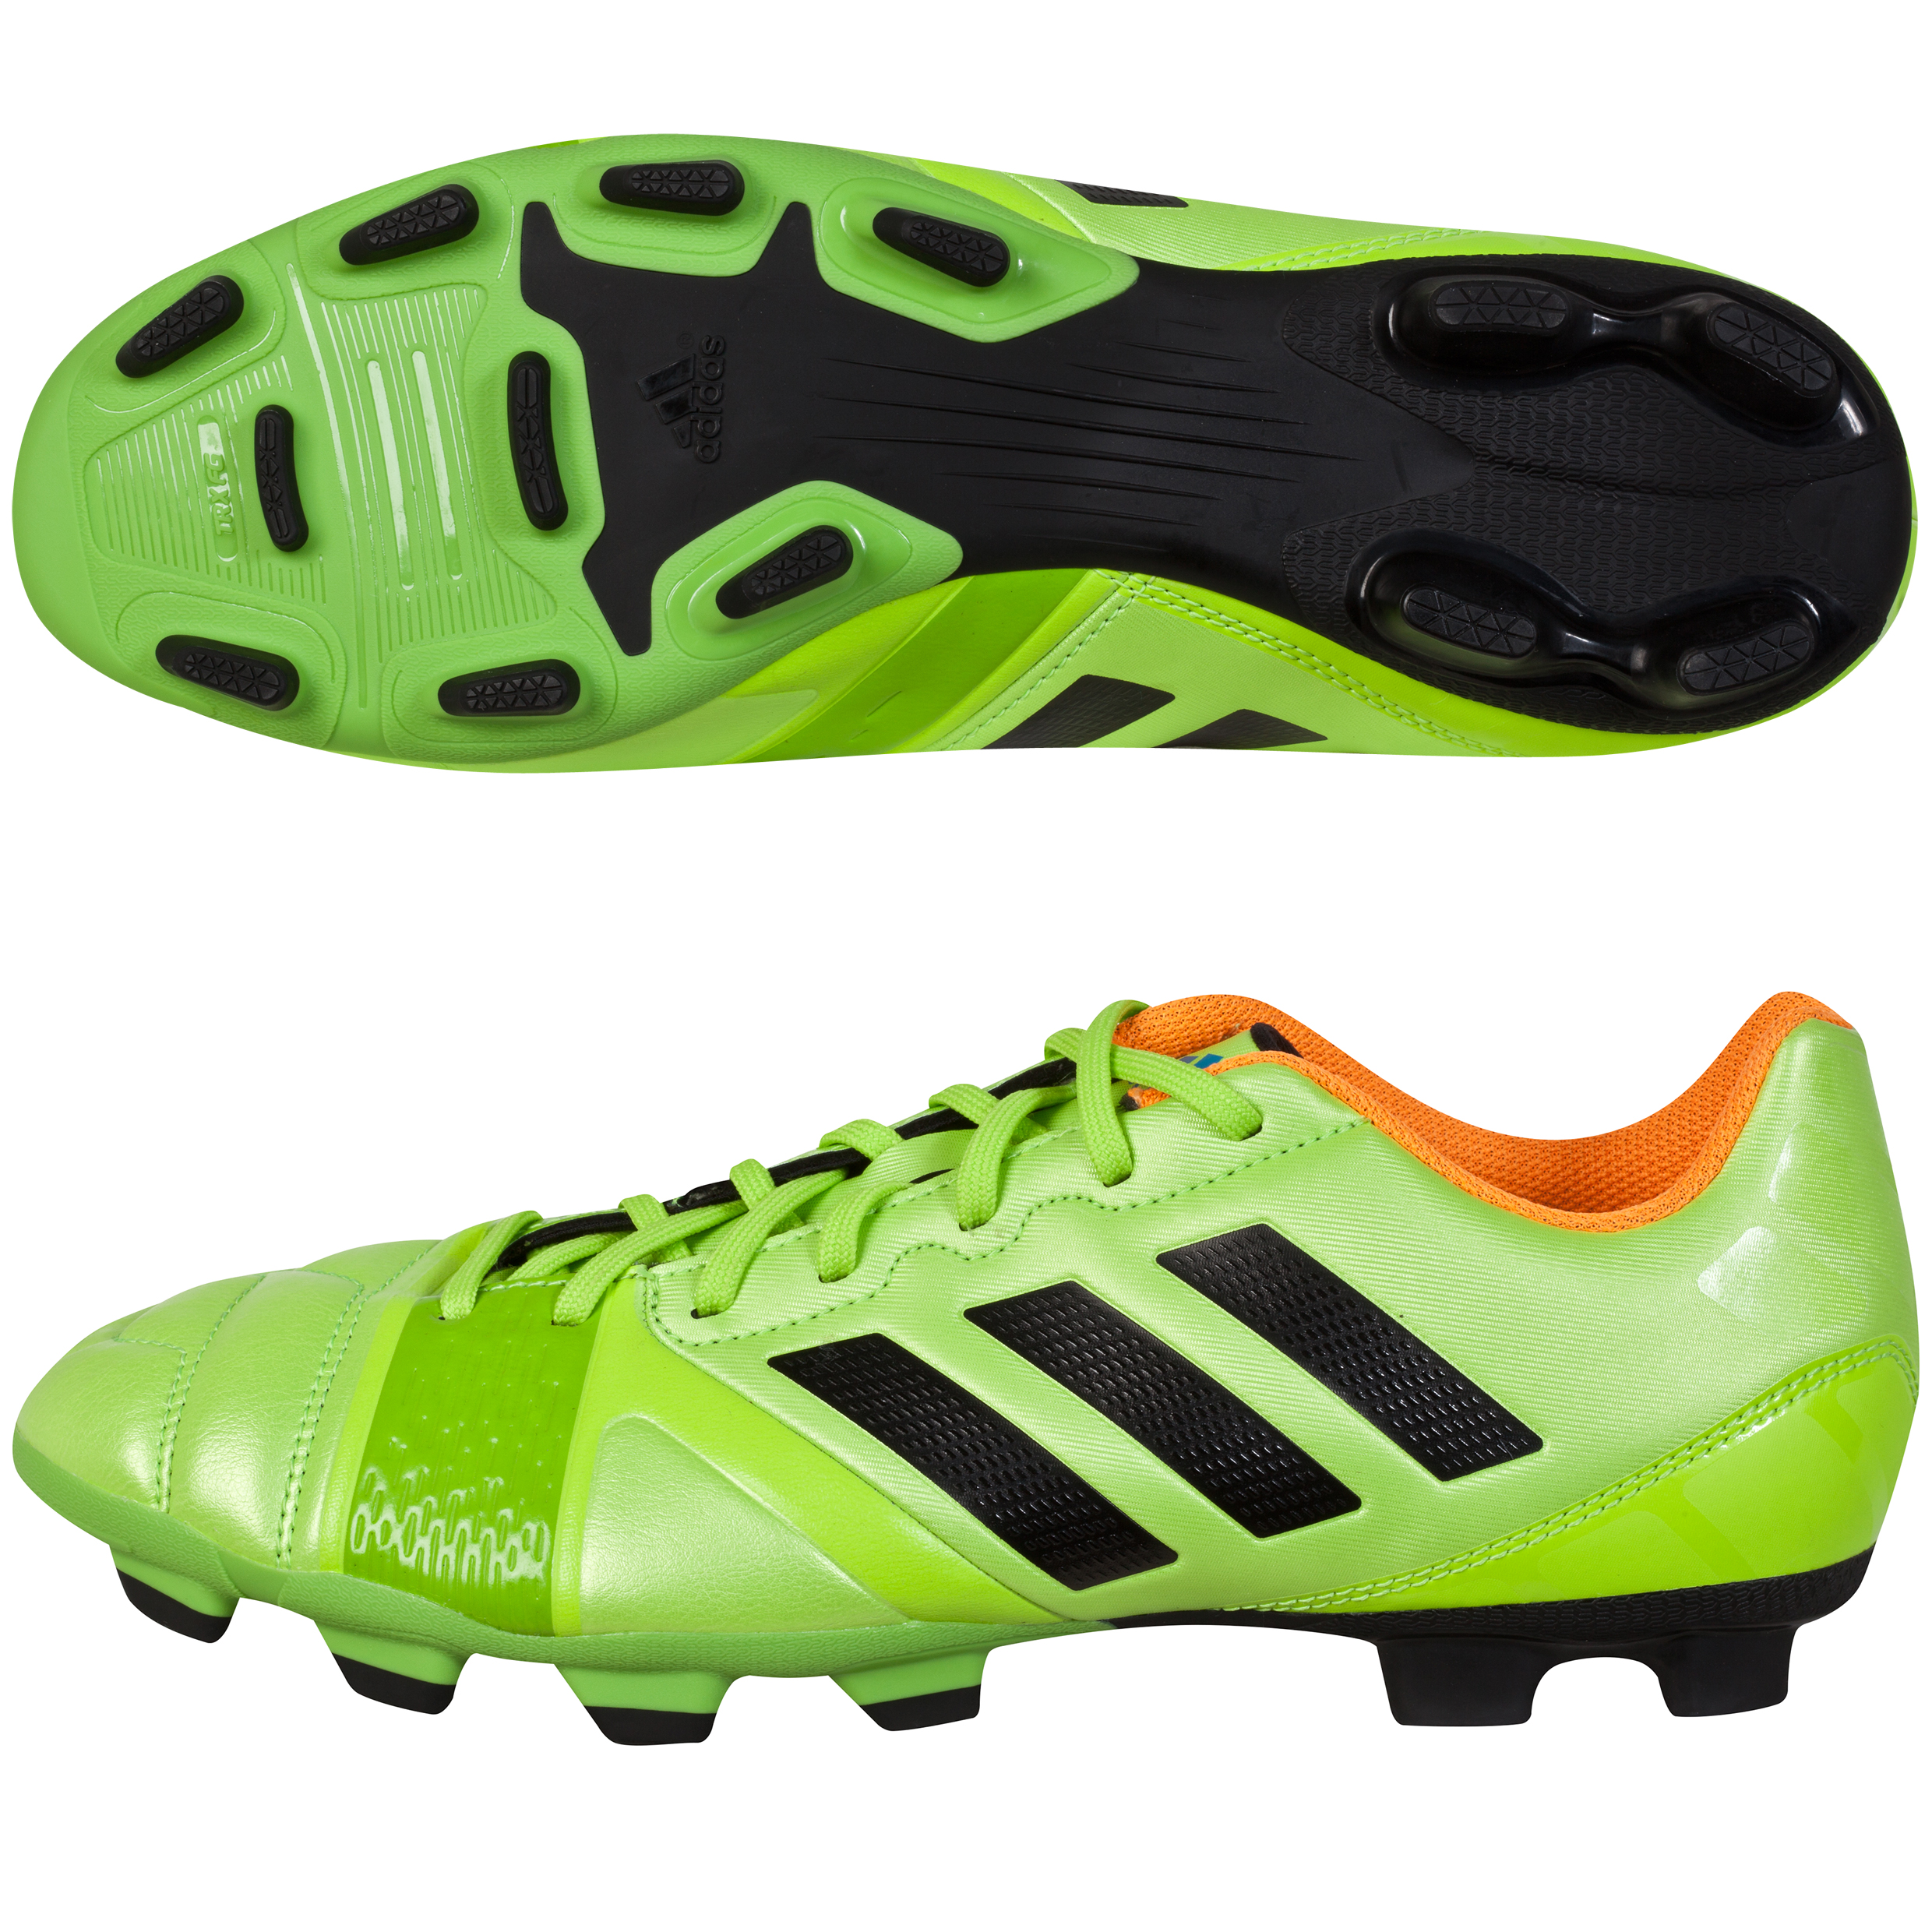 adidas Nitrocharge 3.0 TRX Firm Ground Football Boots Green